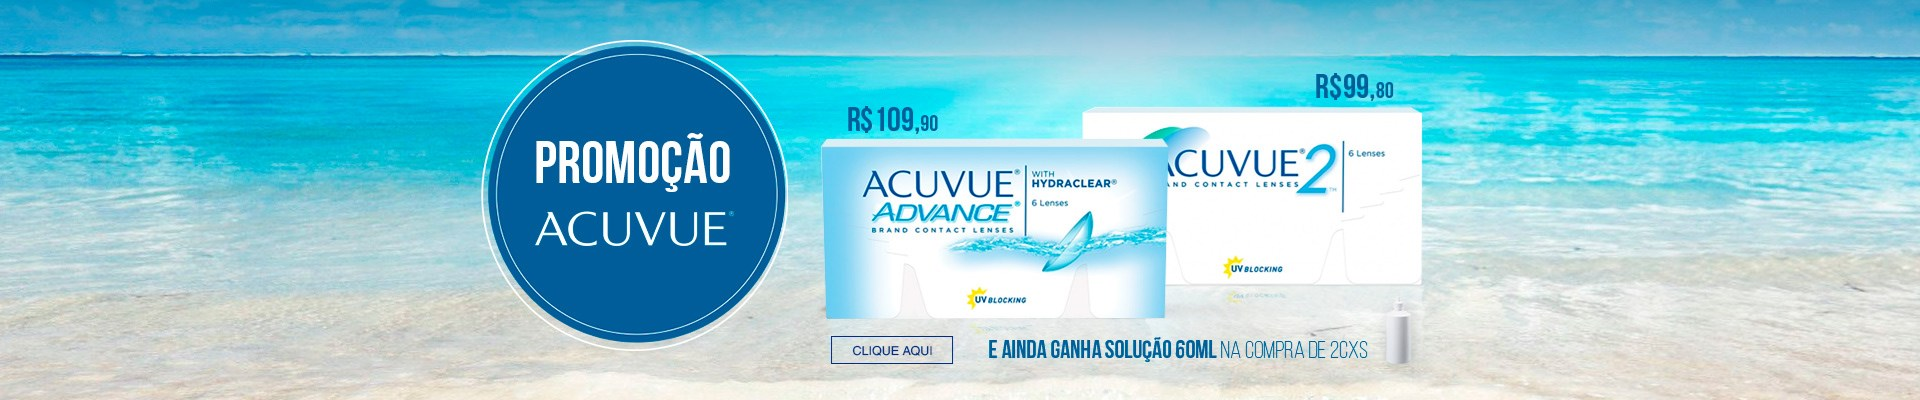 Acuvue Advance e Acuvue 2